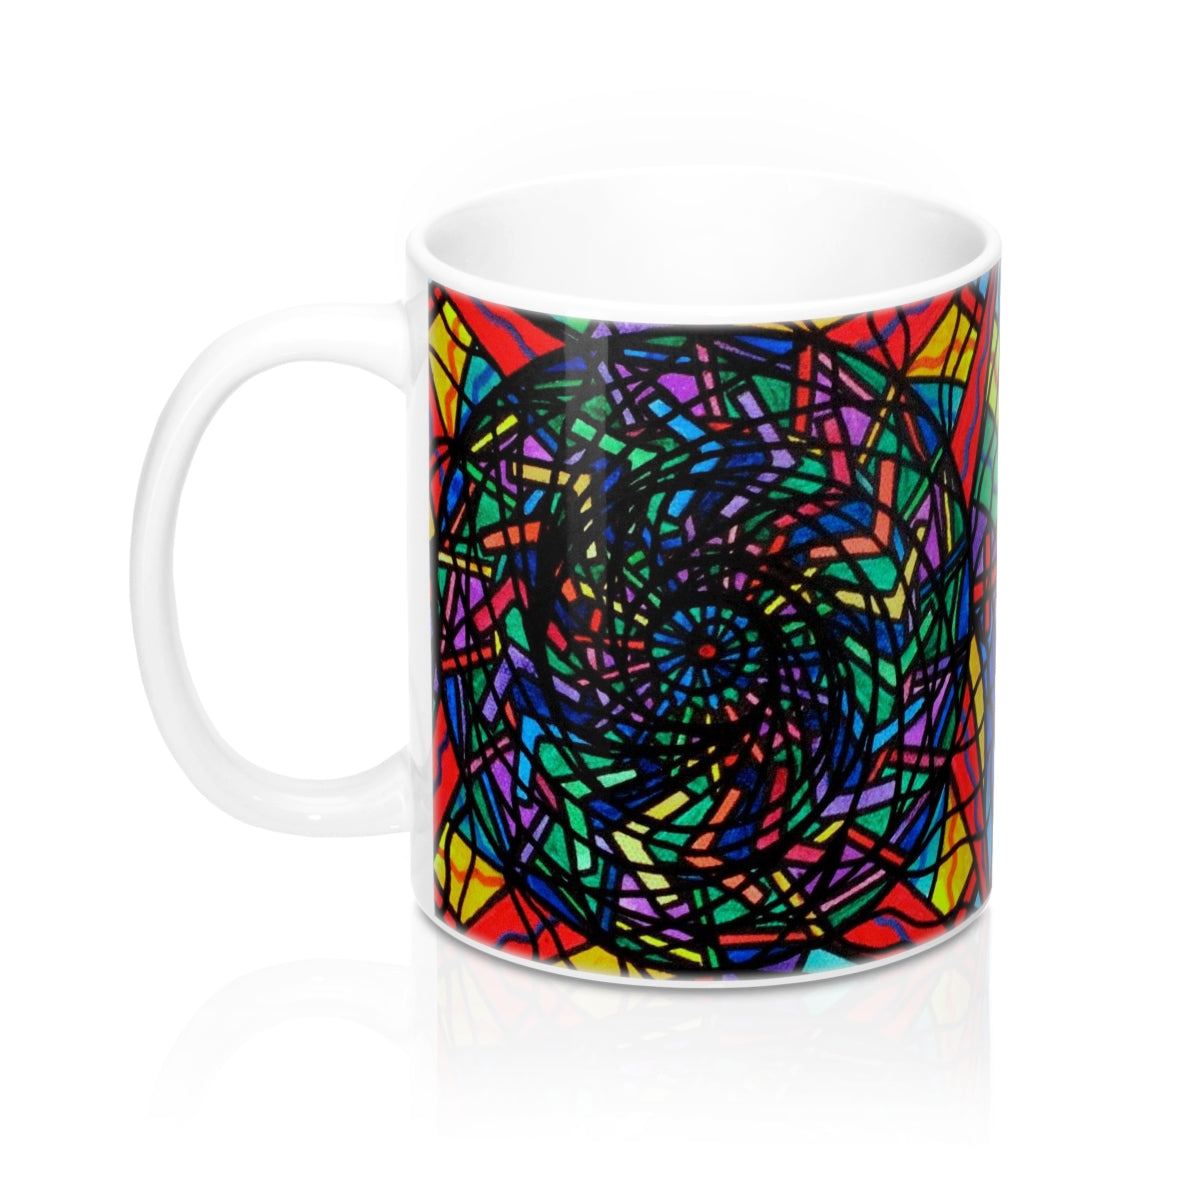 Academic Fullfillment - Mug